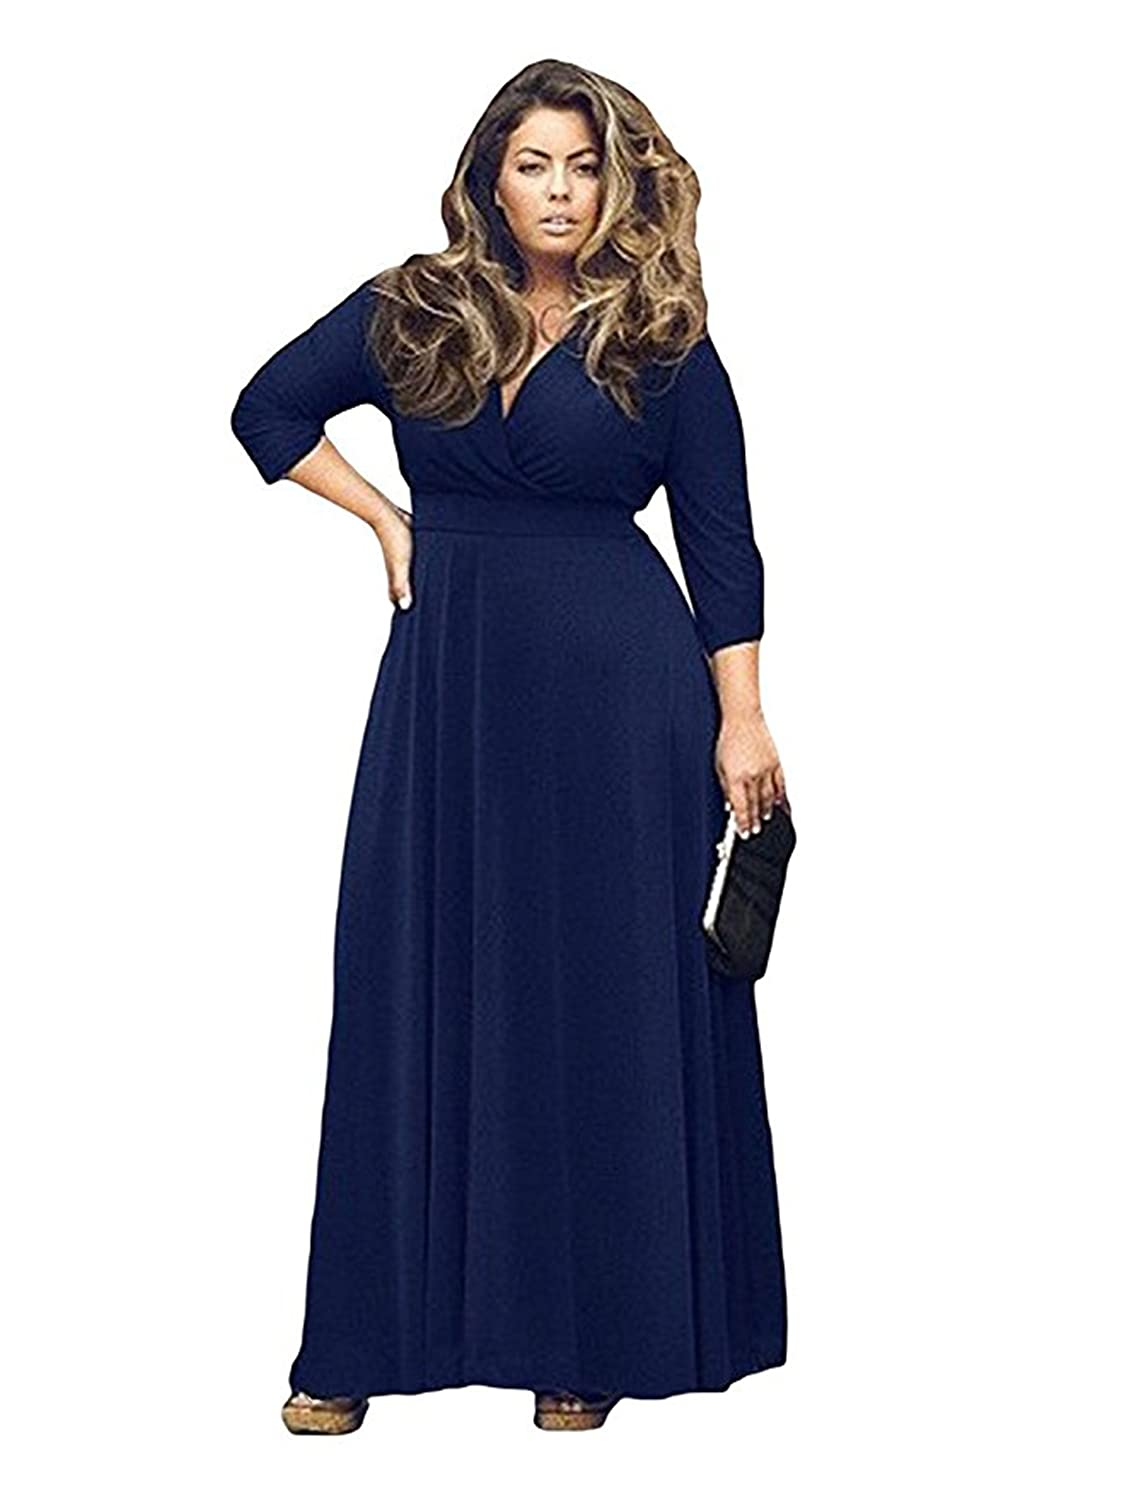 d33e81c594e ... curve while its empire waist and full length help hide tummies and  thick thighs subtly. FEATURES  PLUS SIZE EVENING DRESS FOR WELL-ROUNDED  LADIES - 3 4 ...